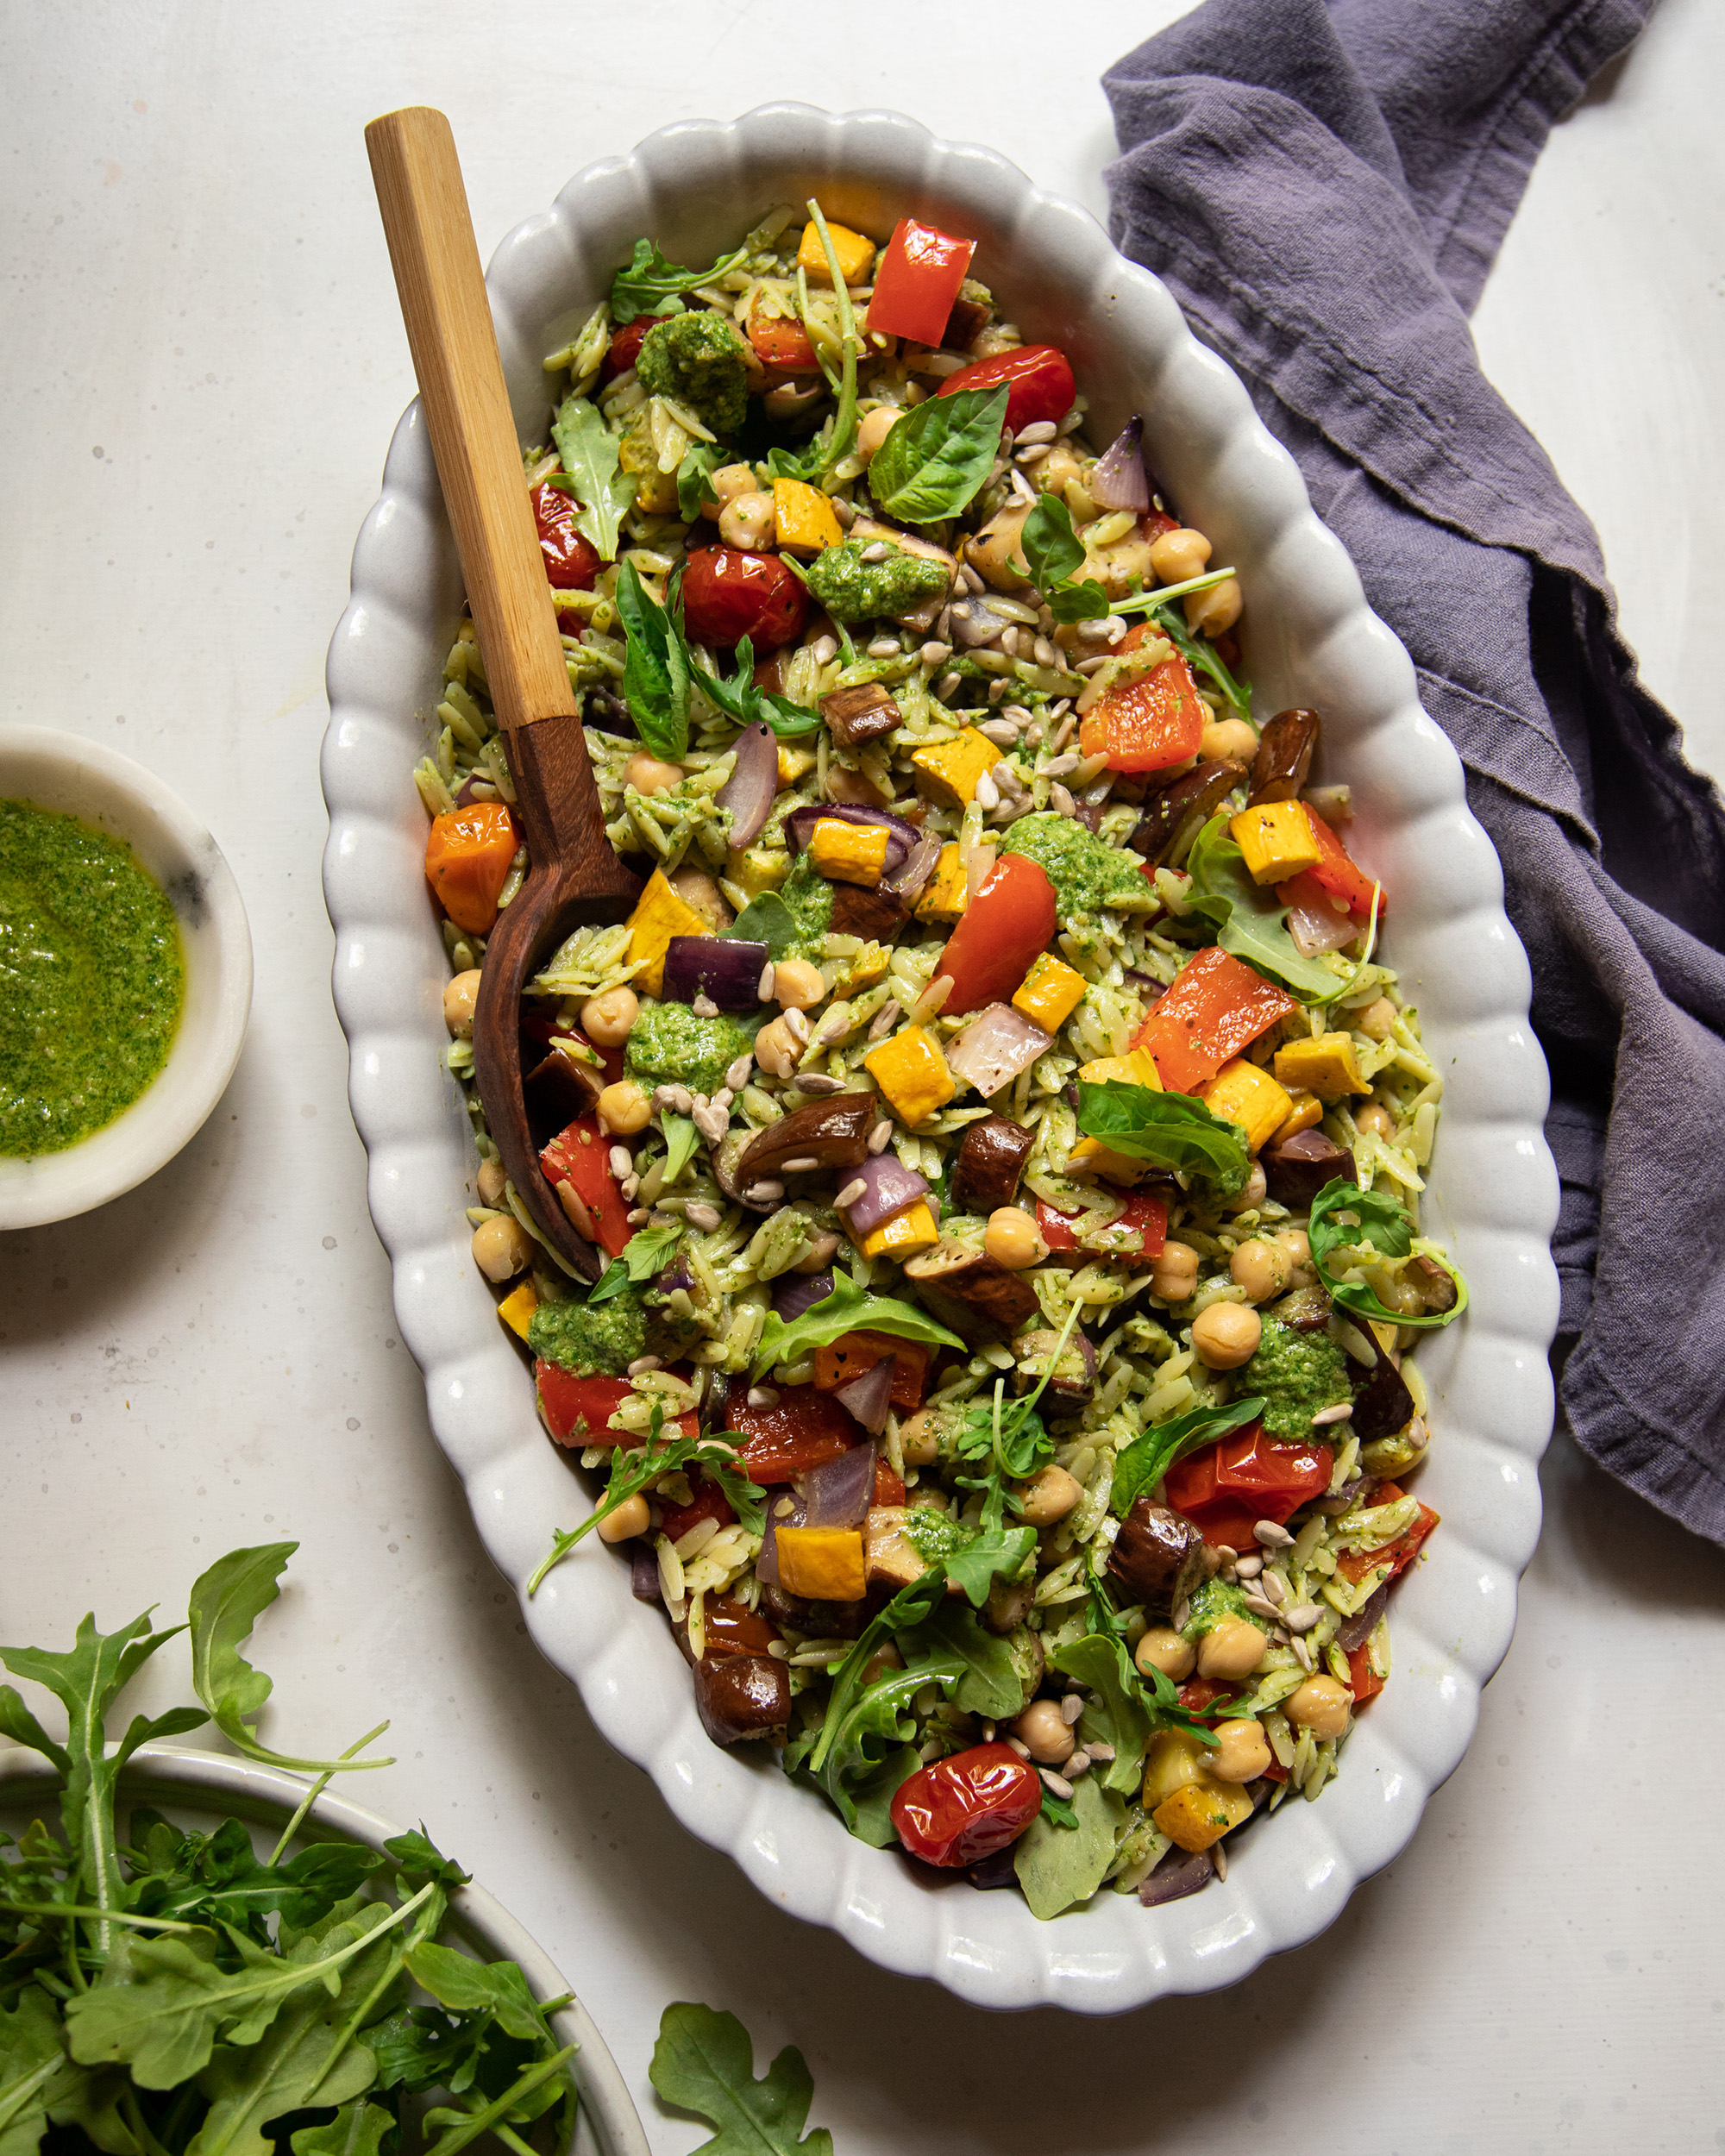 An overhead shot of a pesto orzo salad with dices of roasted vegetables and chickpeas. The dressing is creamy and bright green. There is a wooden spoon sticking out of the dish of salad.